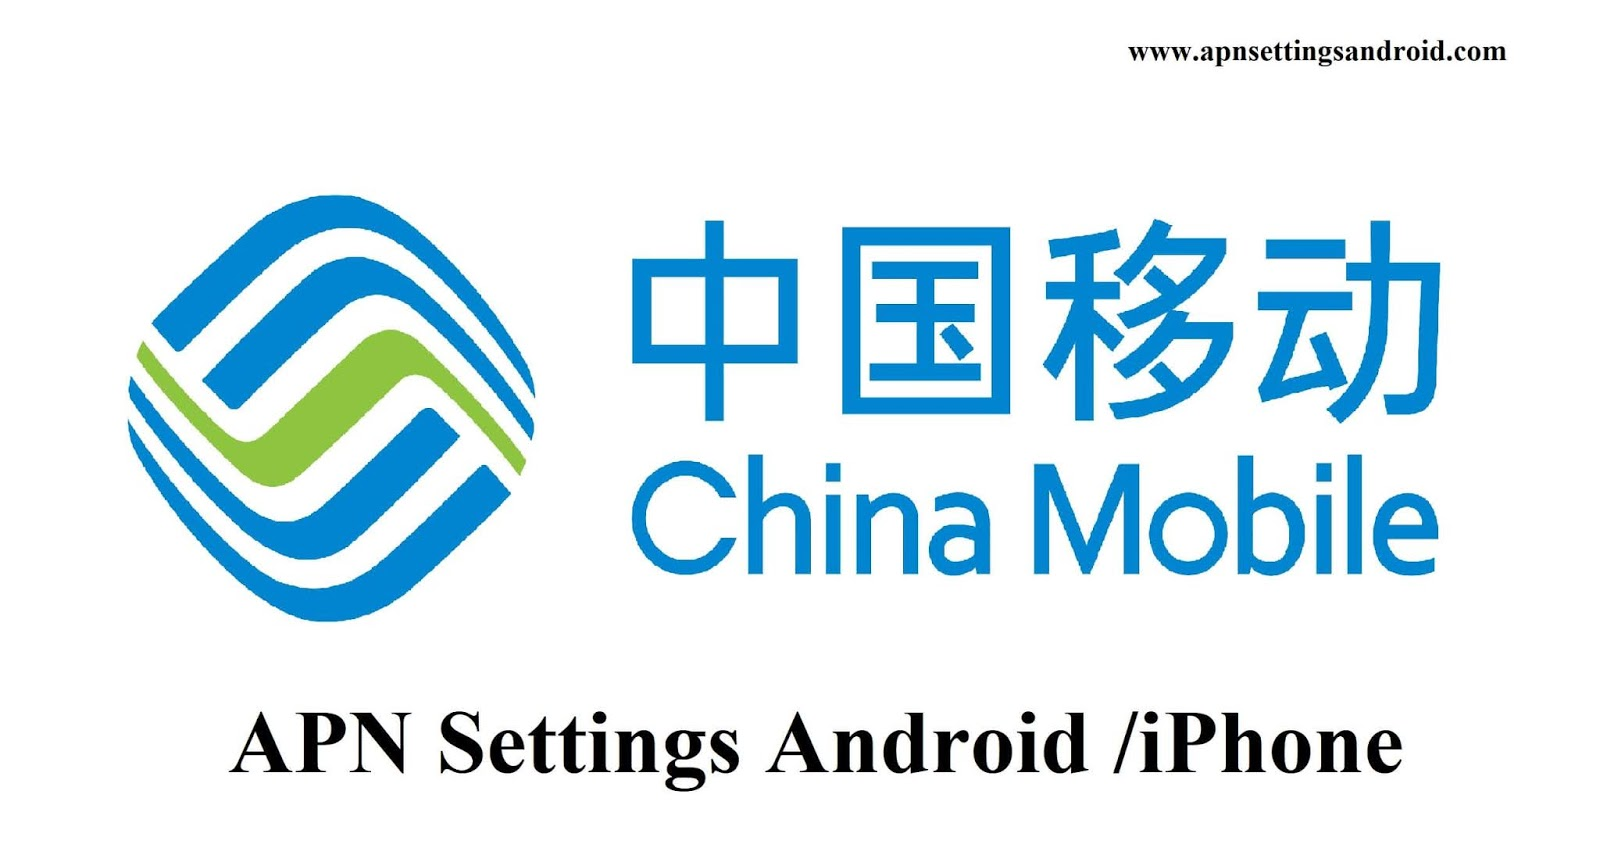 China Mobile APN Settings for Android